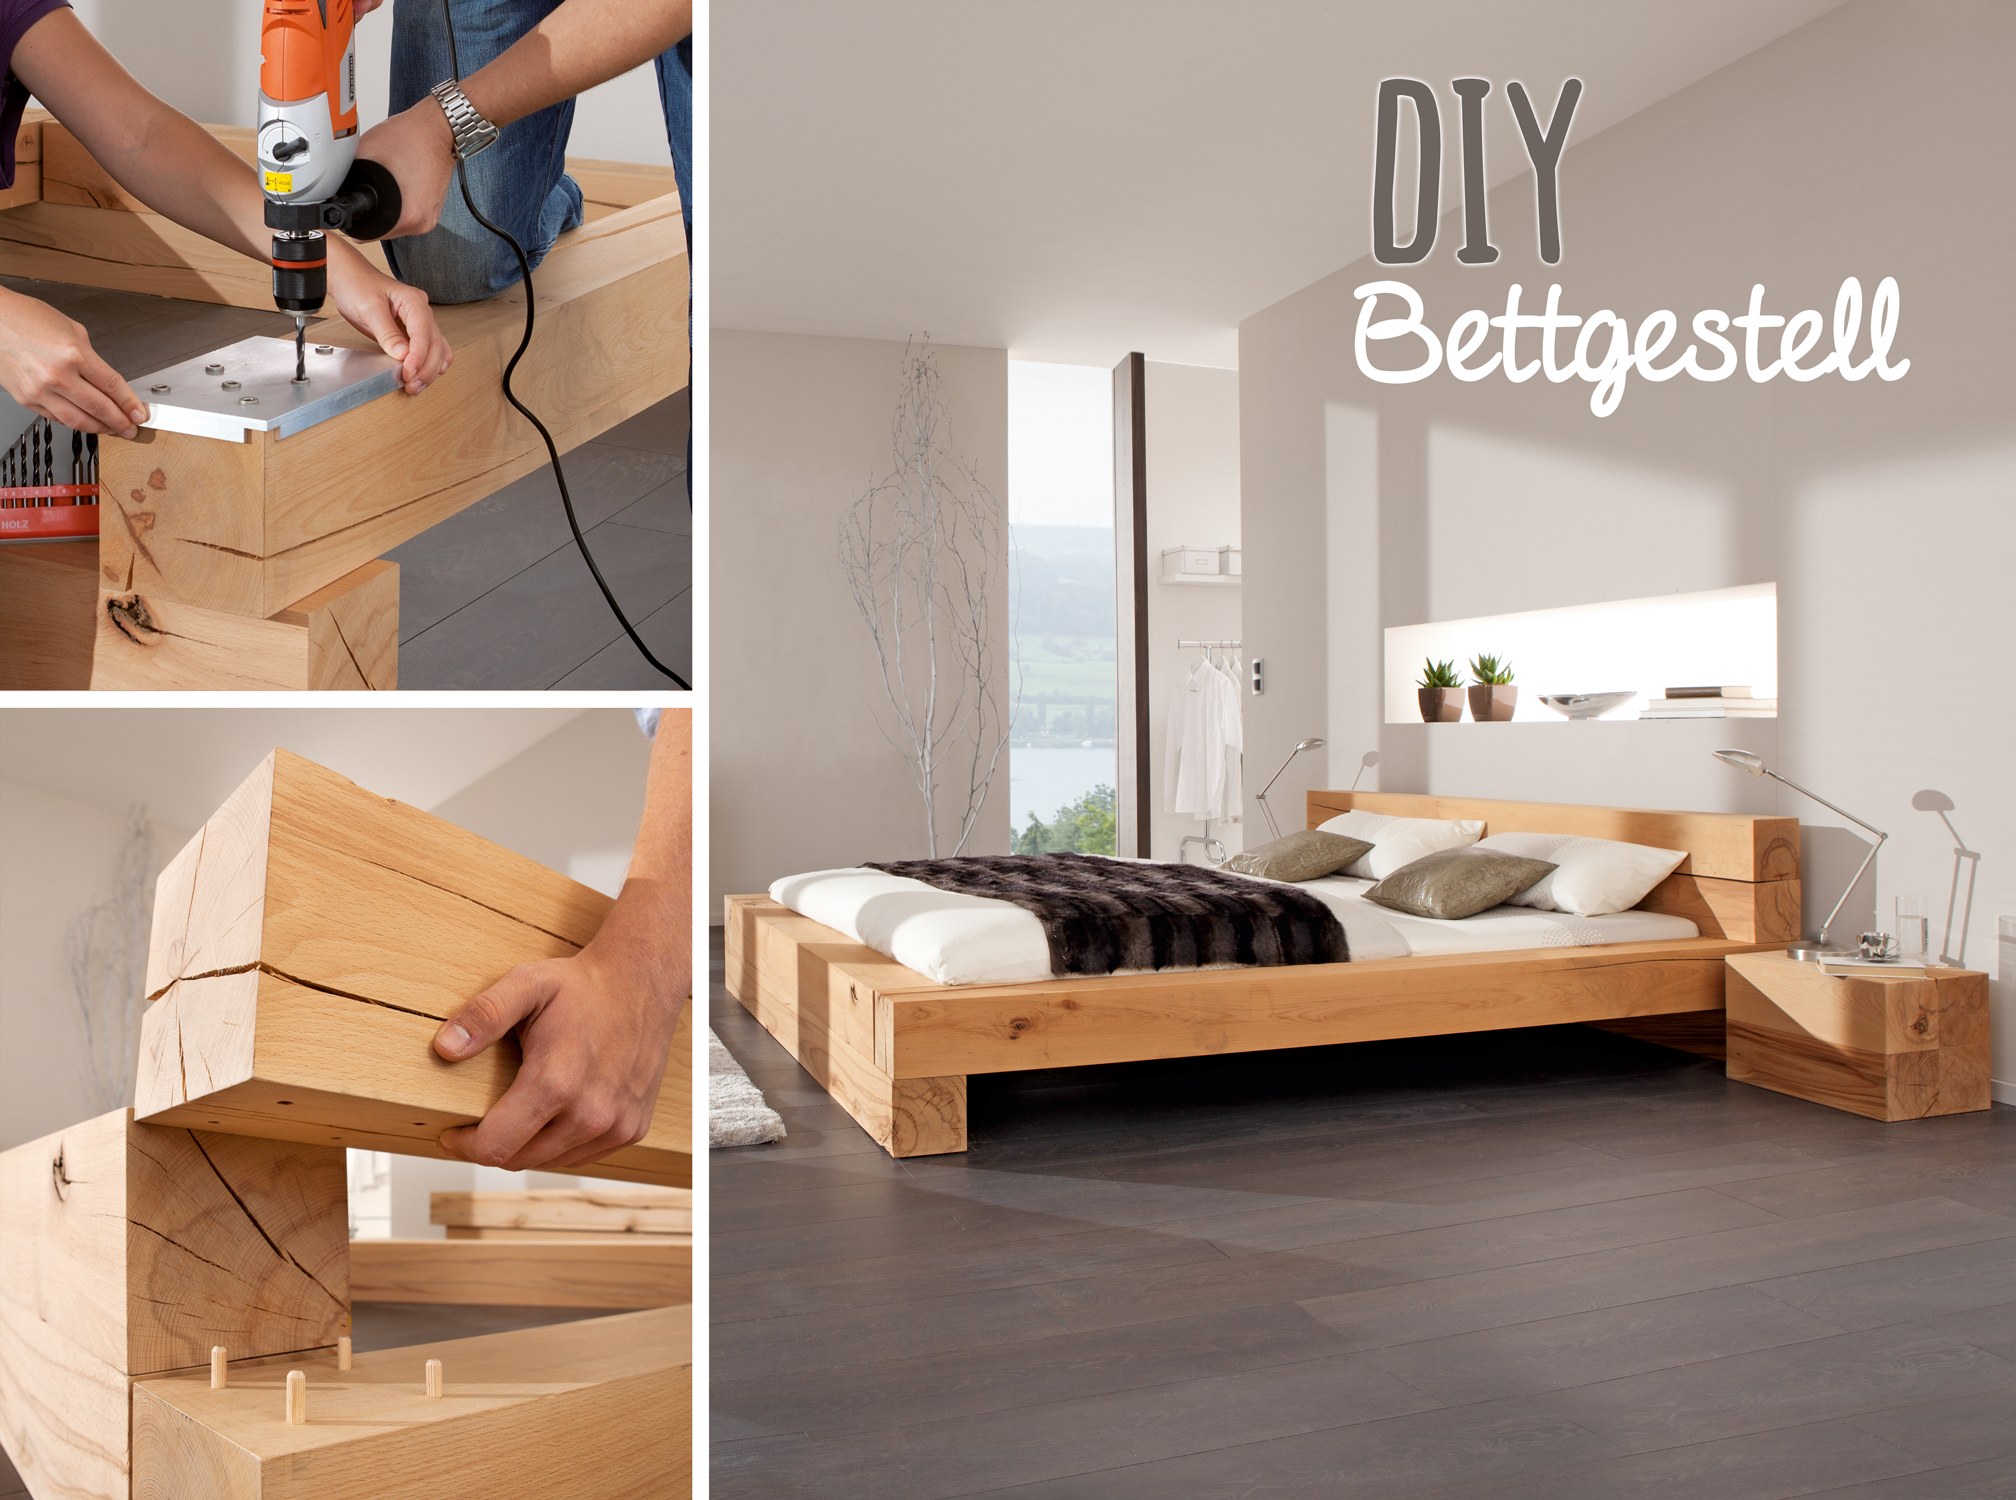 Diy Bettgestell Massiv Blox Holzbalken Do It Yourself Bett Ideen Diy